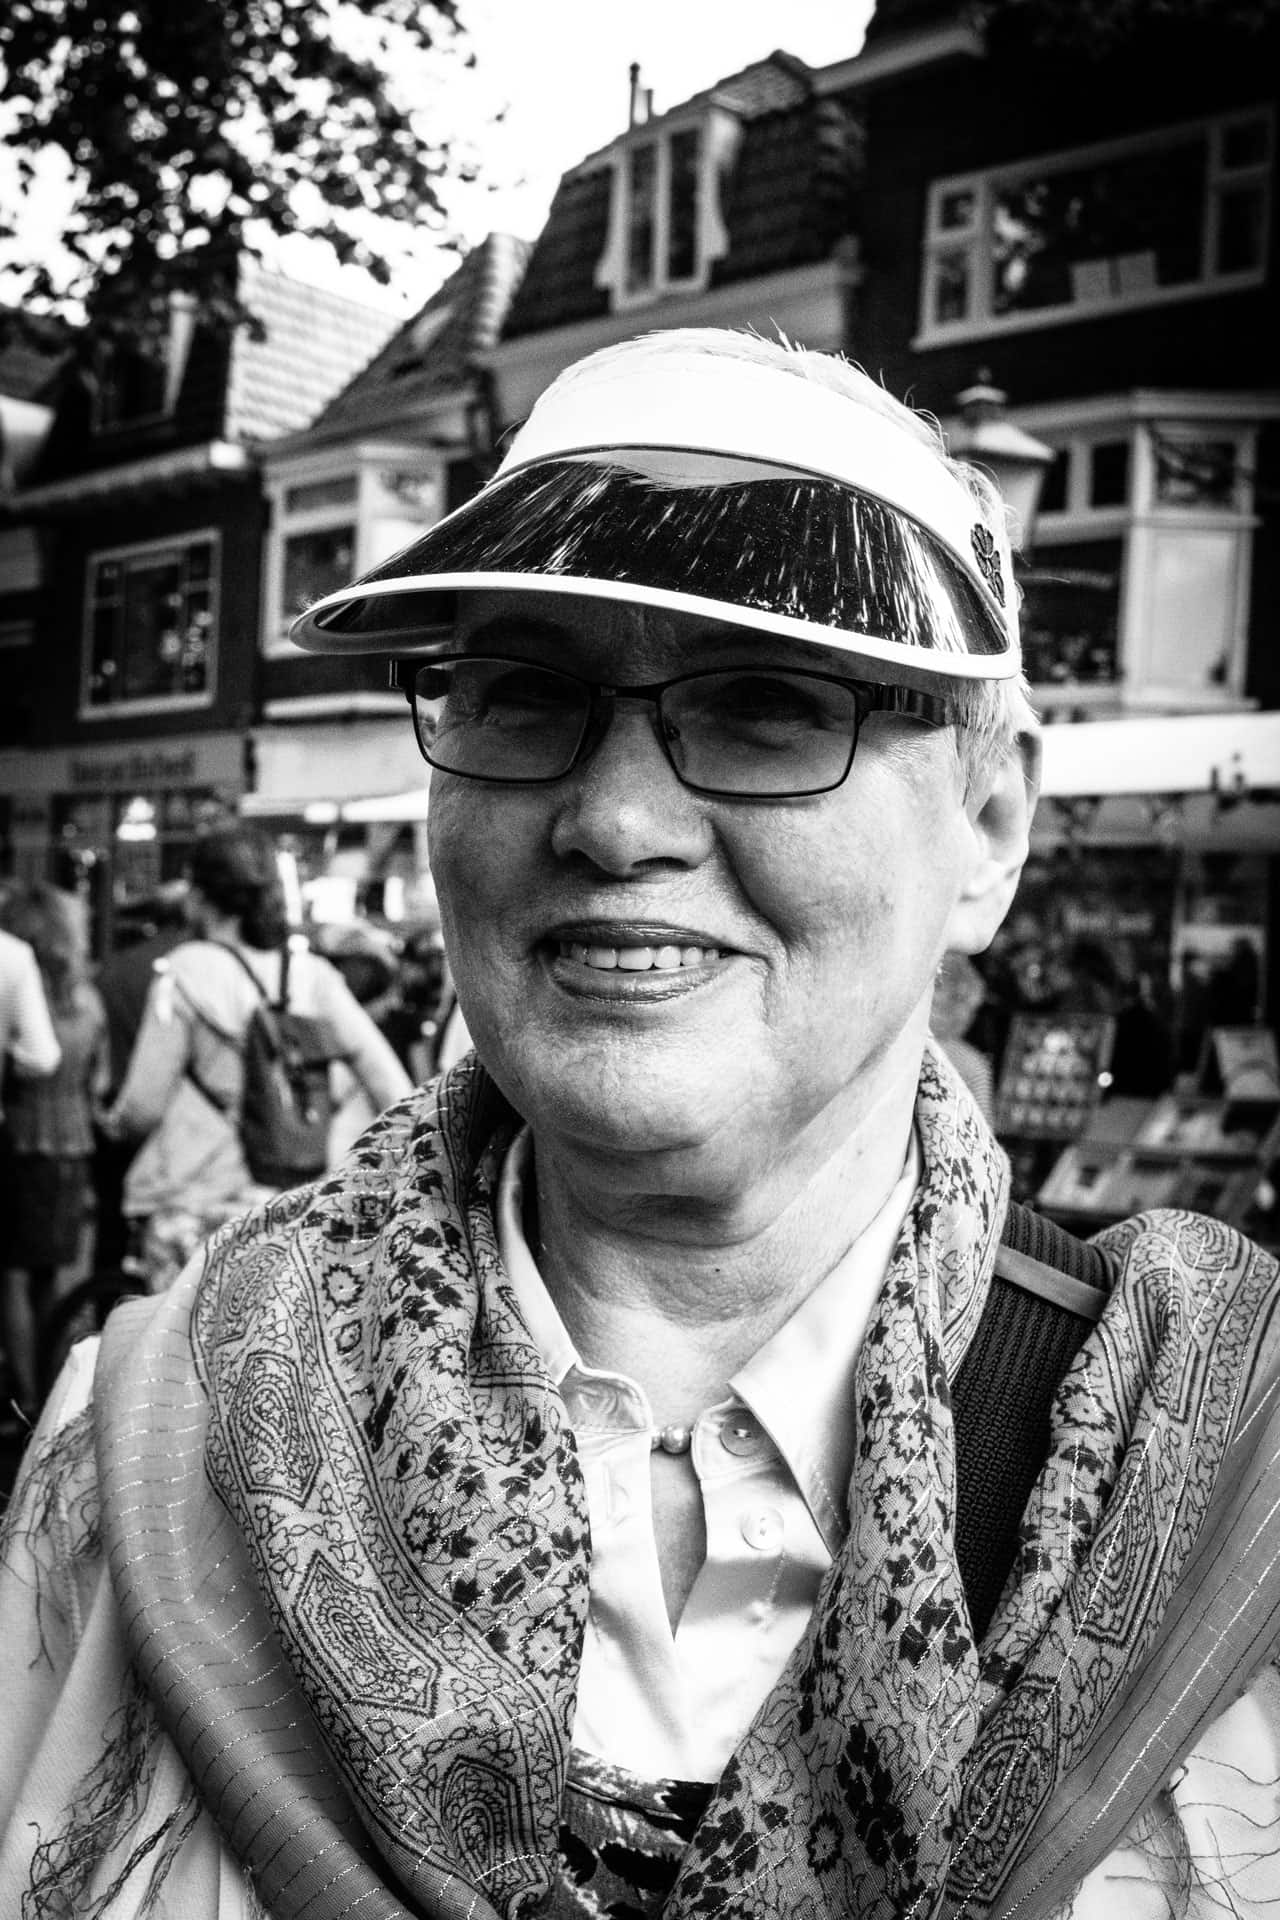 Lady with the white suncap Daily Observations Street Photography